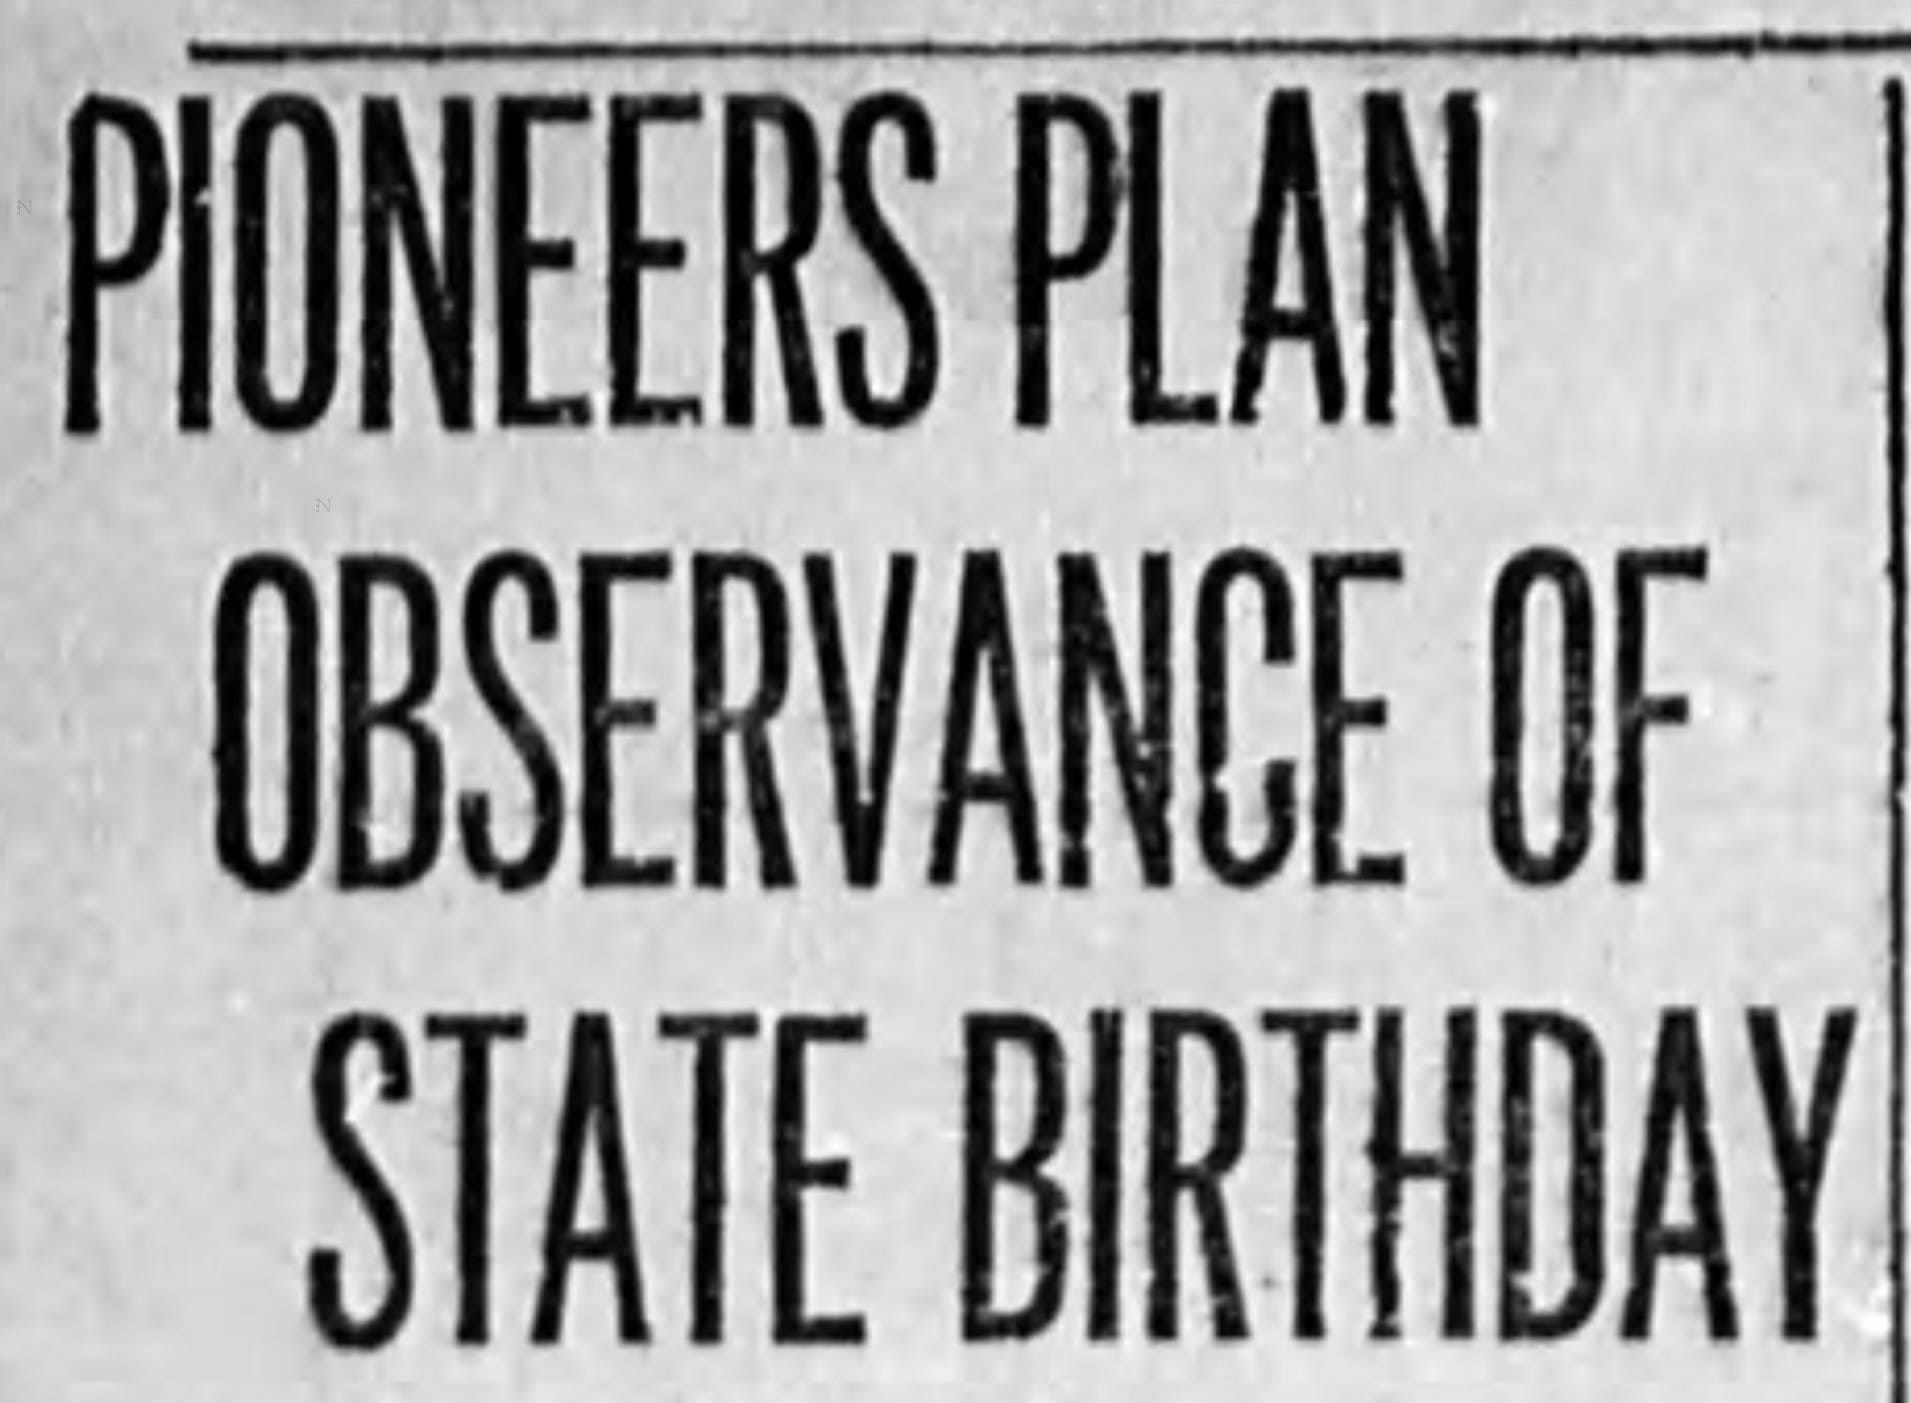 The Capital Journal announces birthday celebration plans for Oregon in its Feb. 4, 1924 edition.